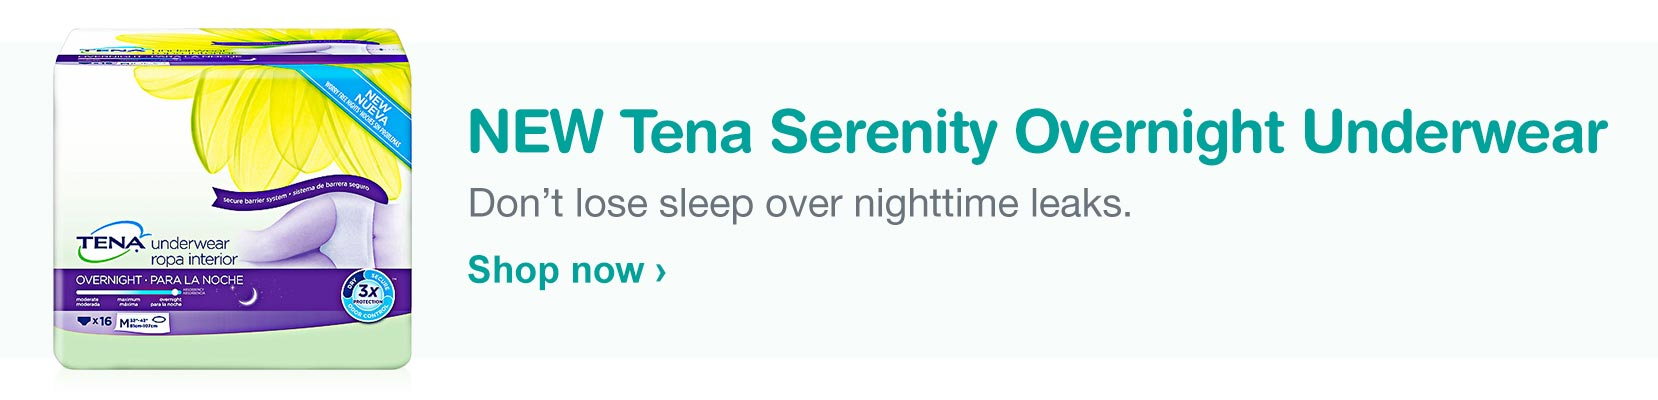 NEW Tena Serenity Overnight Underwear. Don't lose sleep over nighttime leaks. Shop now.